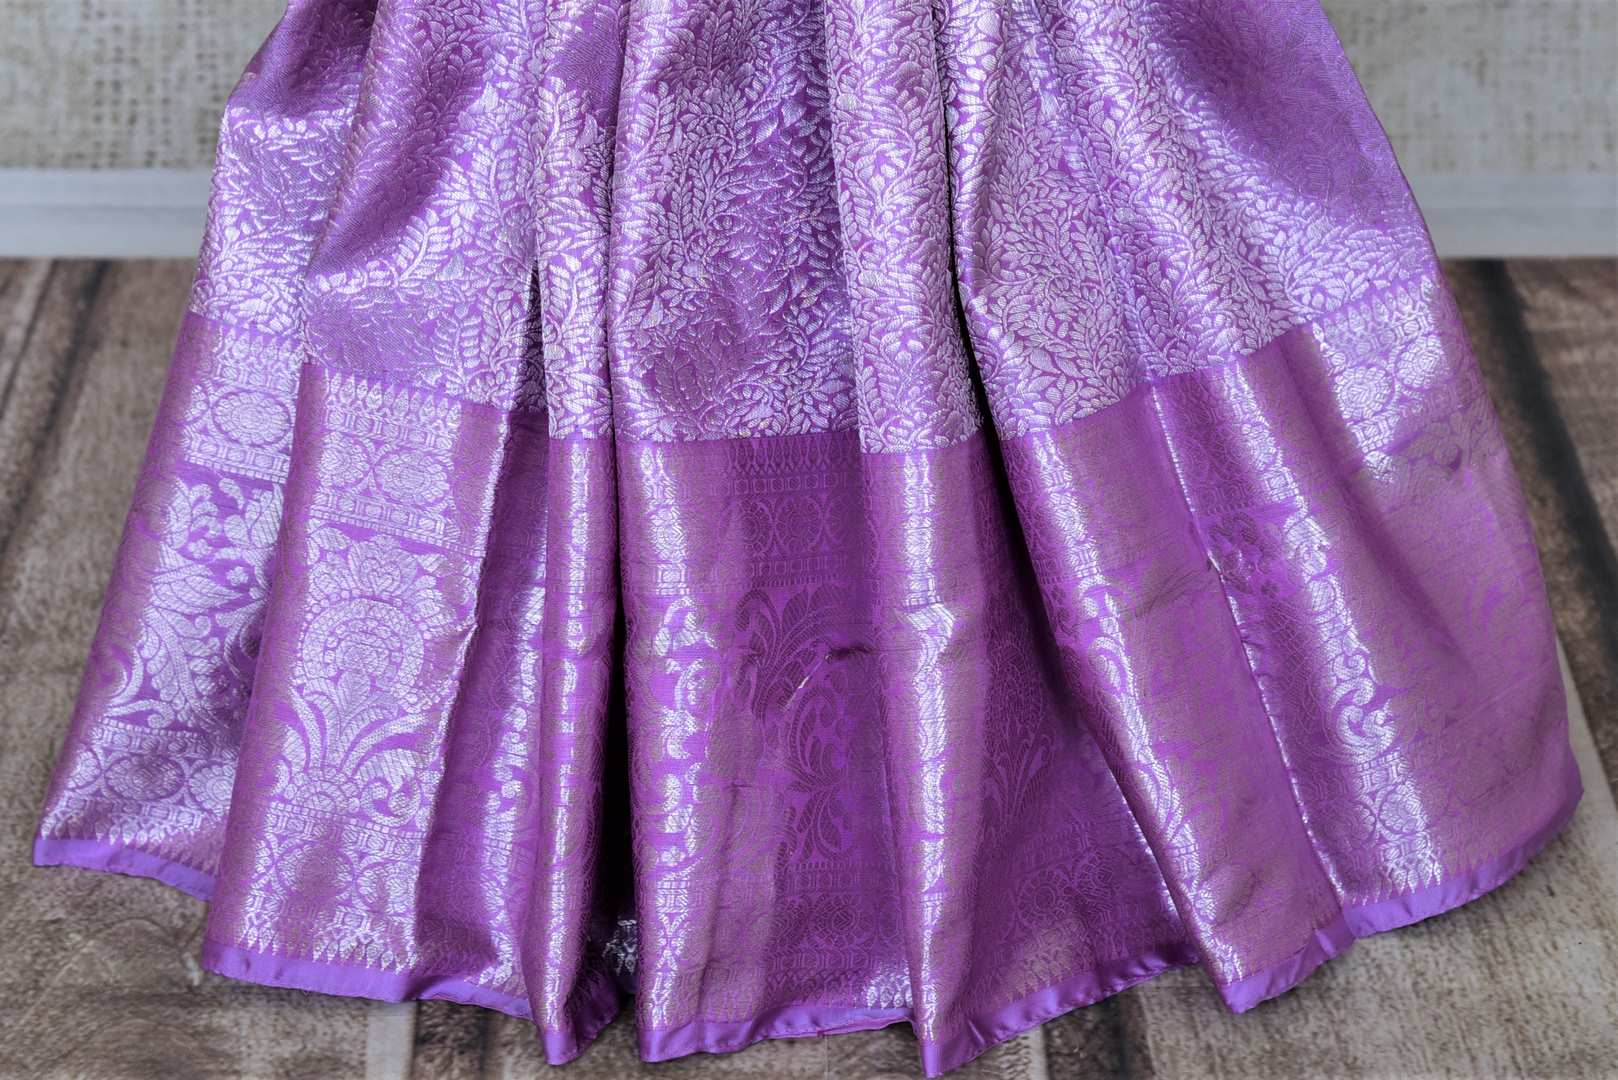 Shop stunning lavender silver zari work Kanjivaram sari online in USA. Look elegant at parties and special occasions in handwoven silk sarees, designer sarees with blouse, embroidered saris from Pure Elegance Indian luxury clothing store in USA.-pleats